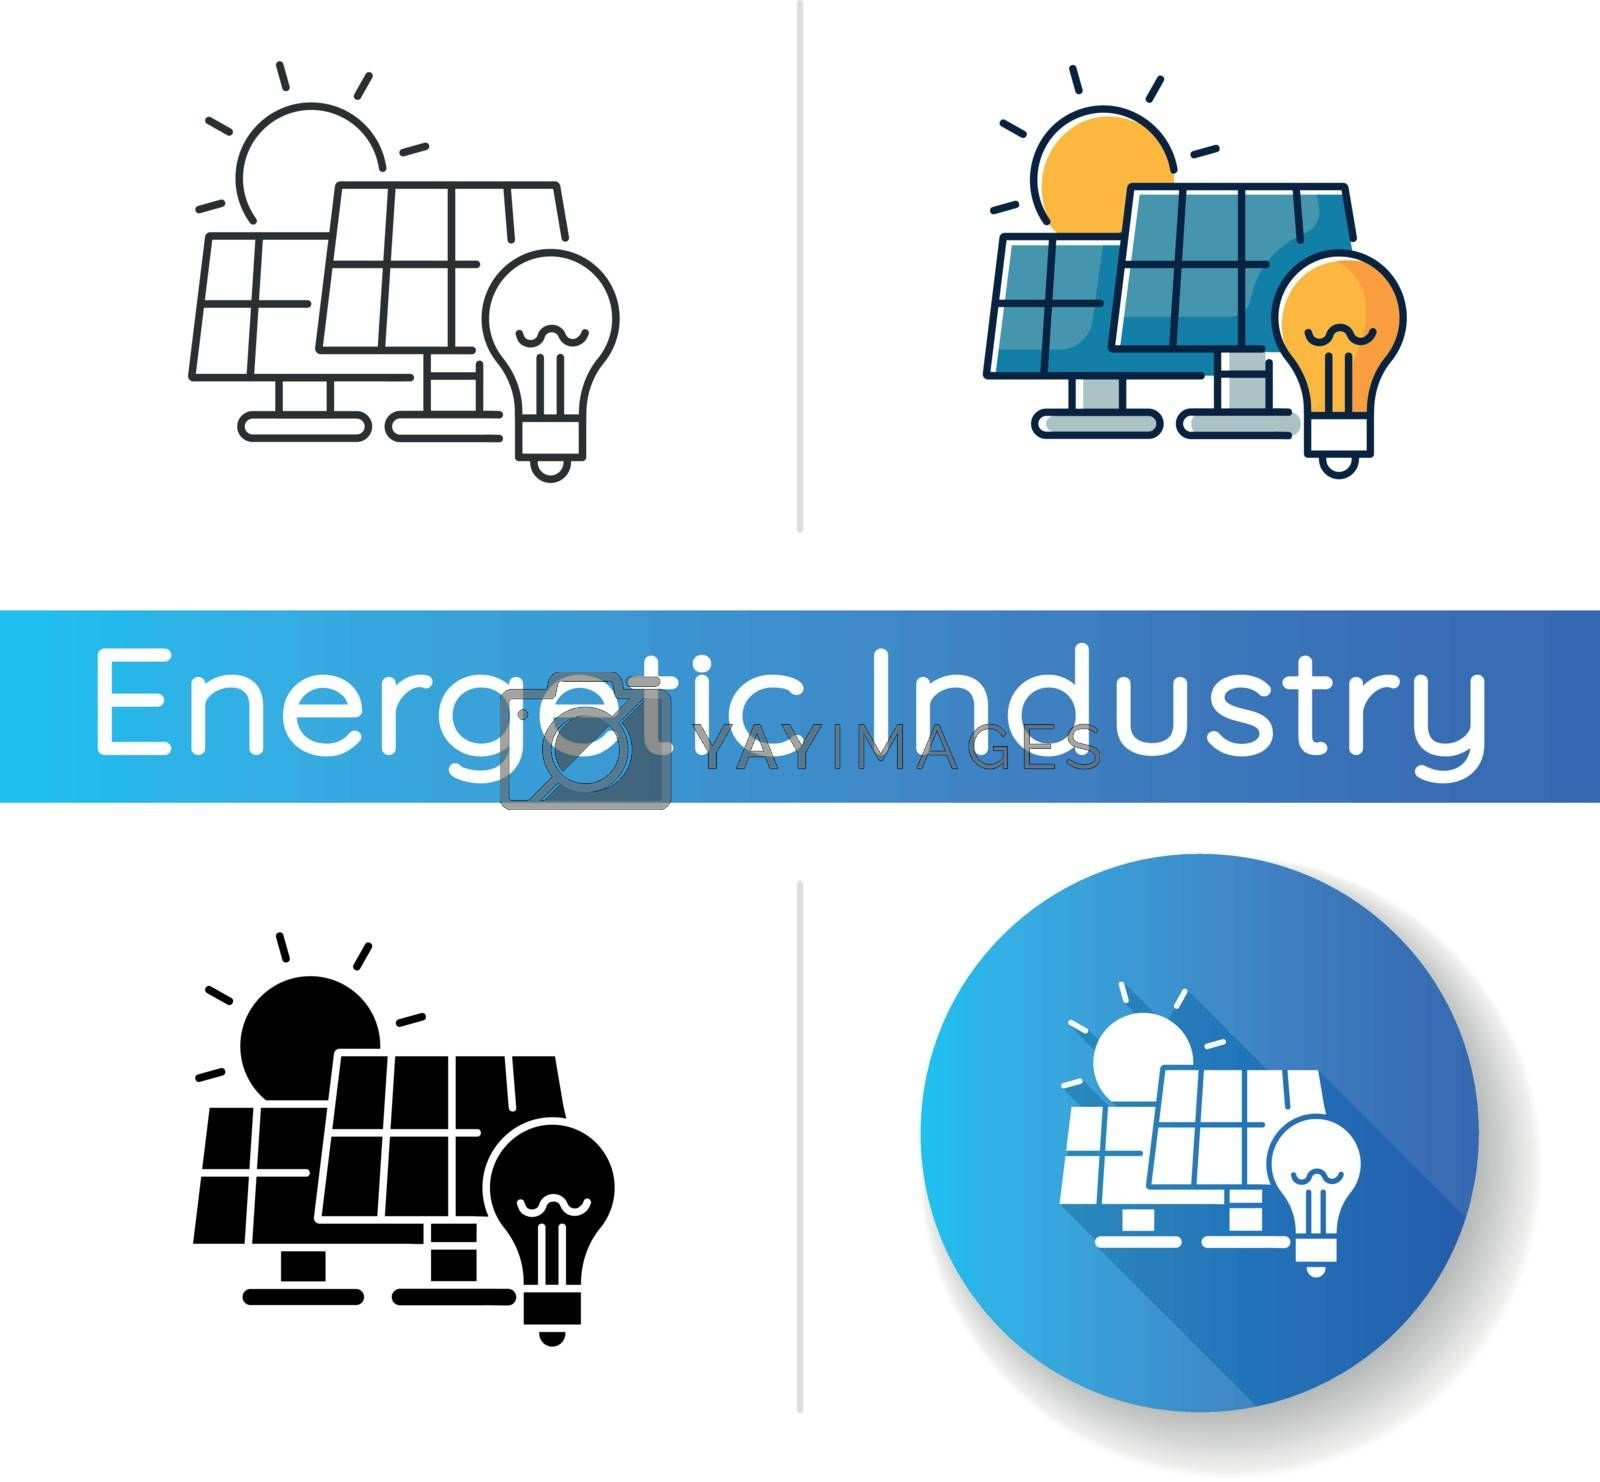 Solar power station icon. Linear black and RGB color styles. Renewable energy, alternative electricity manufacturing. Power plant with photovoltaic panels isolated vector illustrations